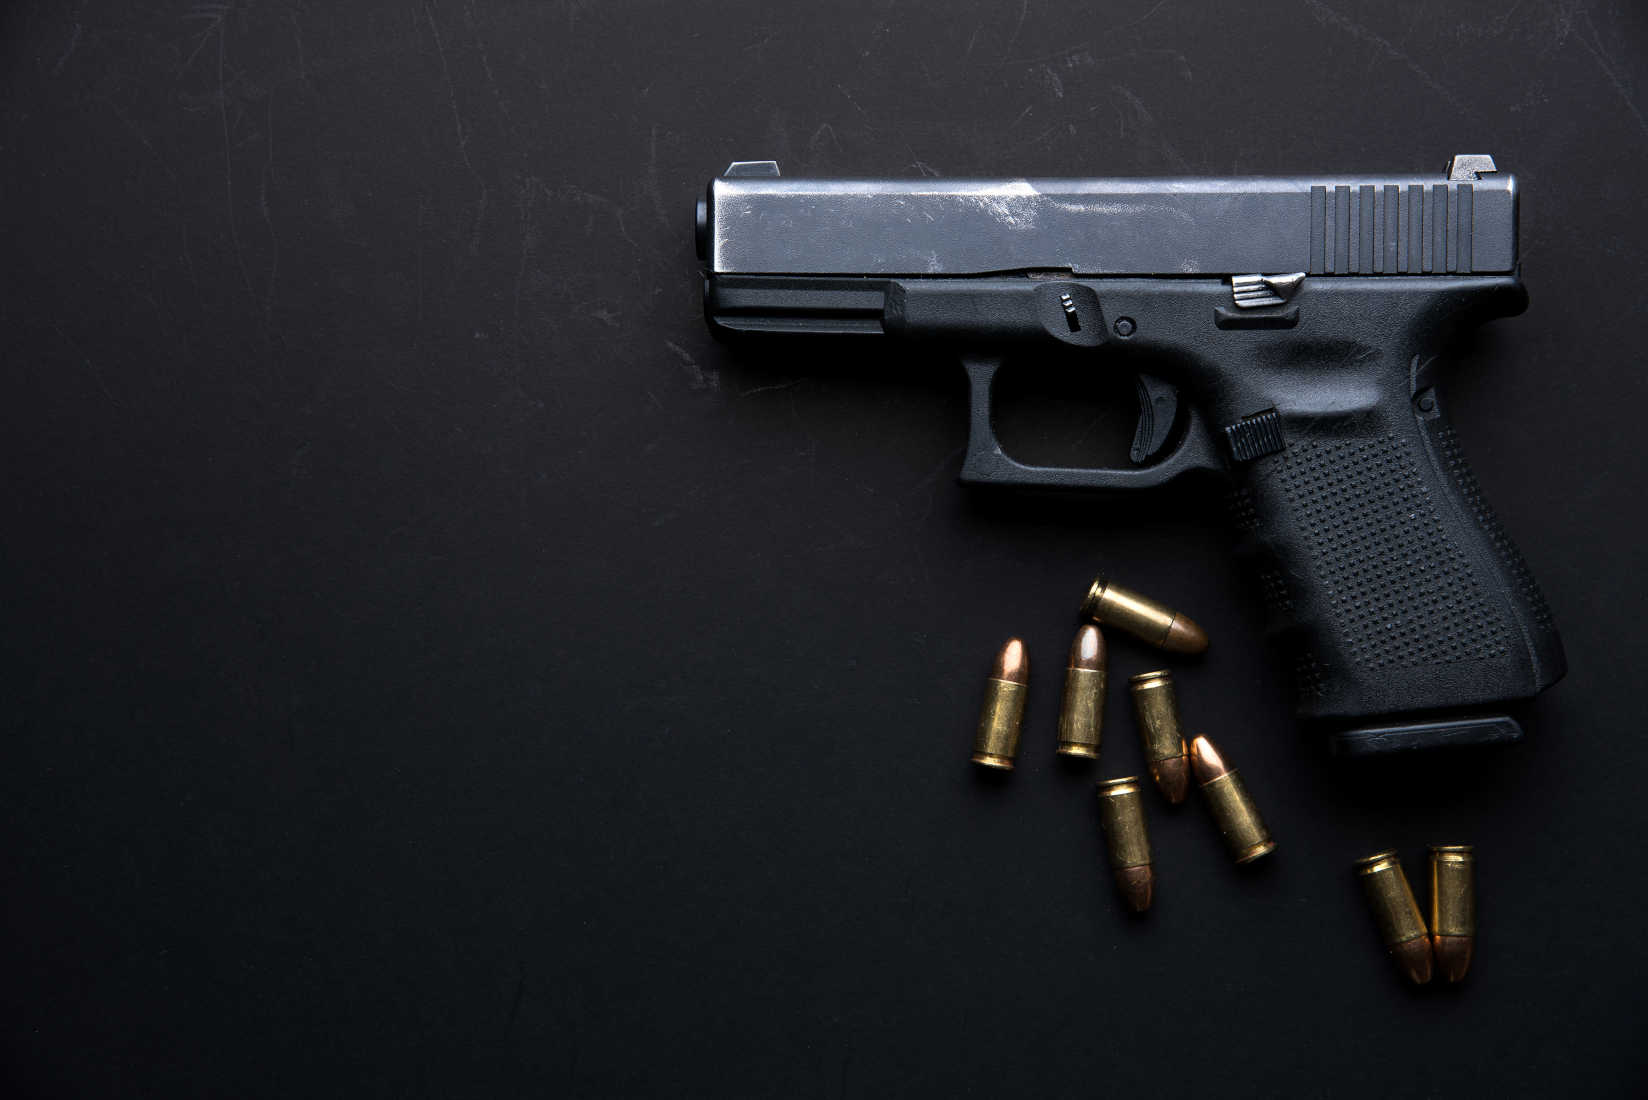 These Seven States Are Making Strides on Smart, Pro-Gun Laws